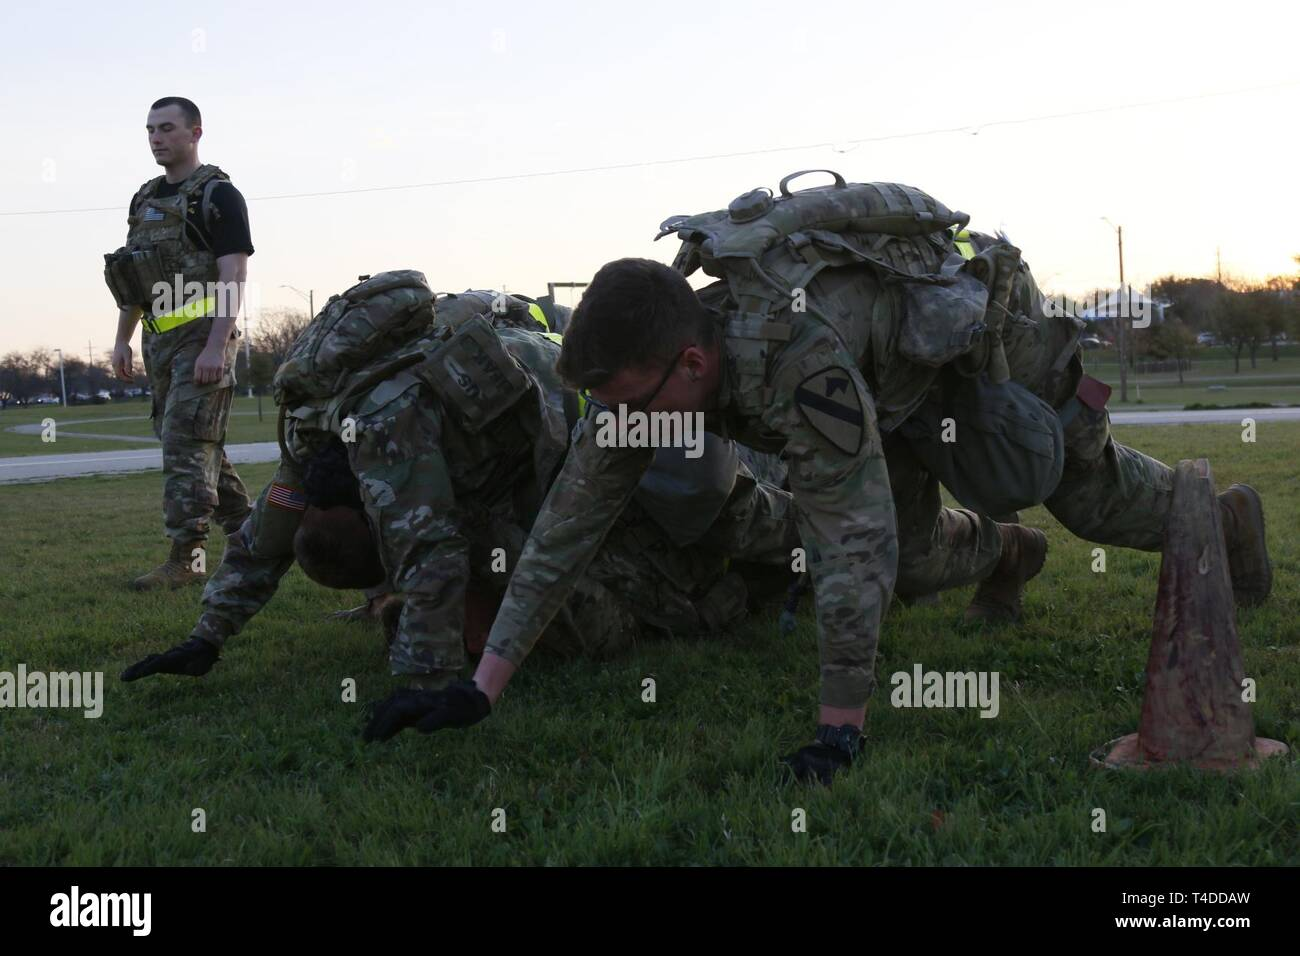 Soldiers from Bravo Company, 2nd Battalion 7th Cavalry Regiment, 3rd